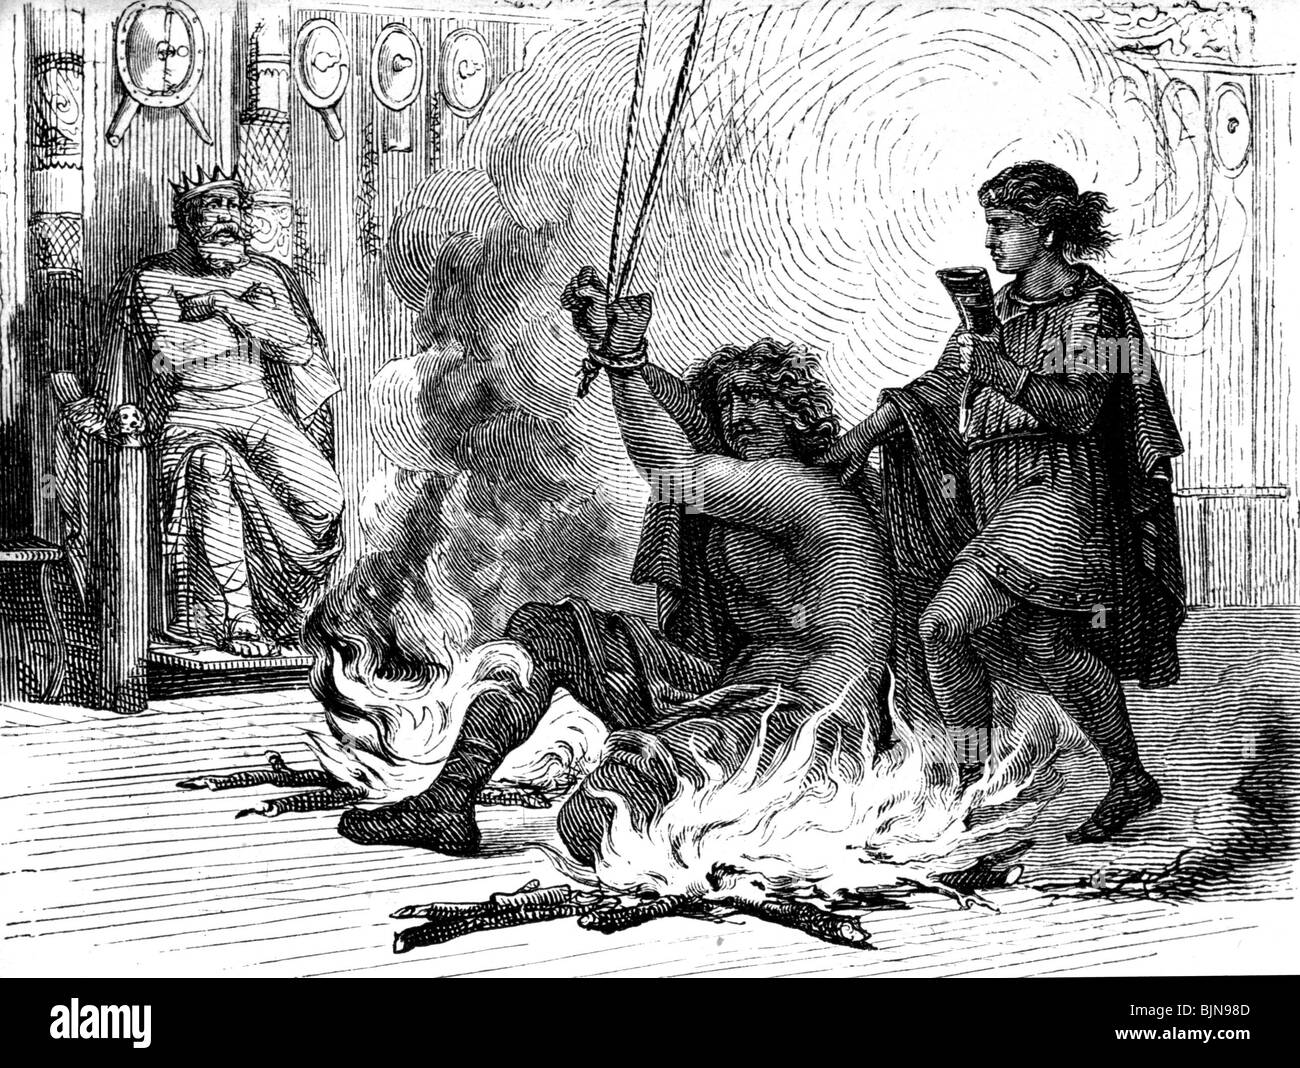 literature, Nordic Legends, Poetic Edda, Odin between two fires with King Geirrod, wood engraving after drawing - Stock Image